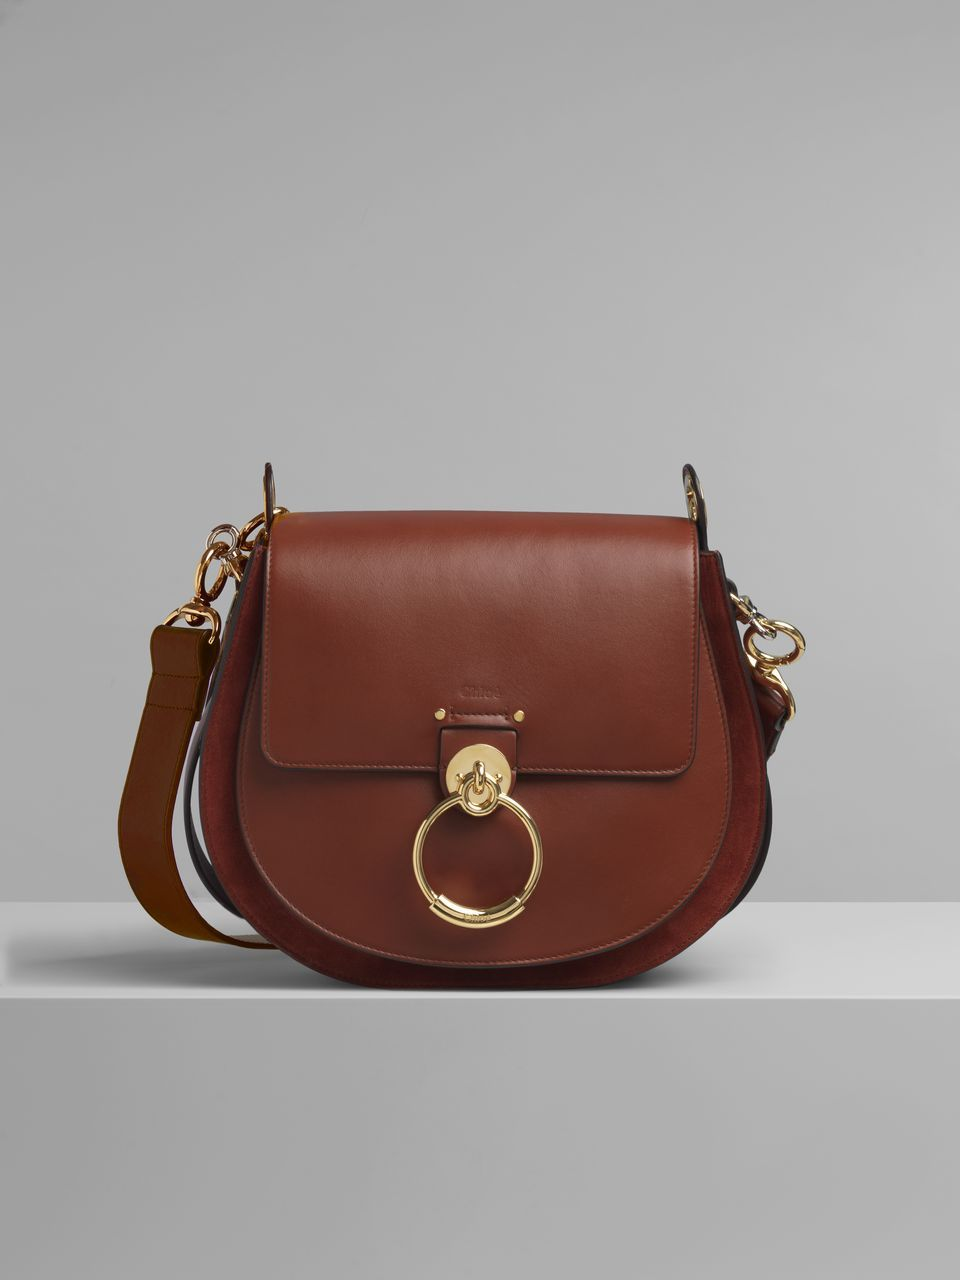 39f37089a048a7 Chloe - Large Tess bag in shiny & suede calfskin | Bag lady | Bags ...